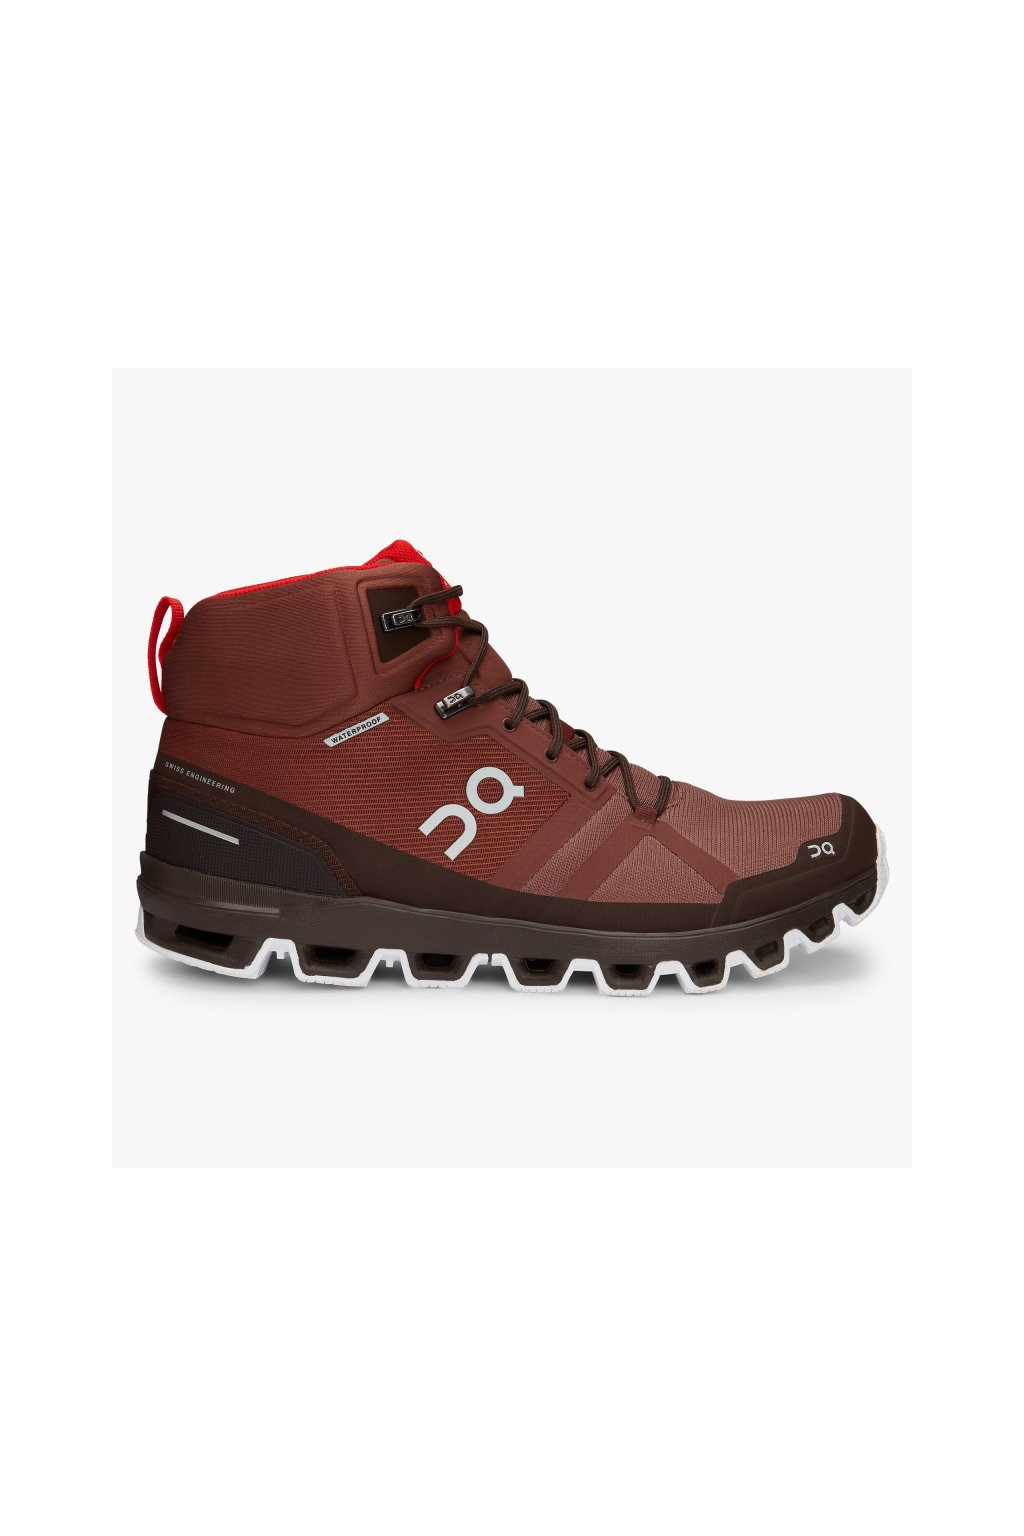 ON CLOUDROCK WATERPROOF COCOA/RED  M